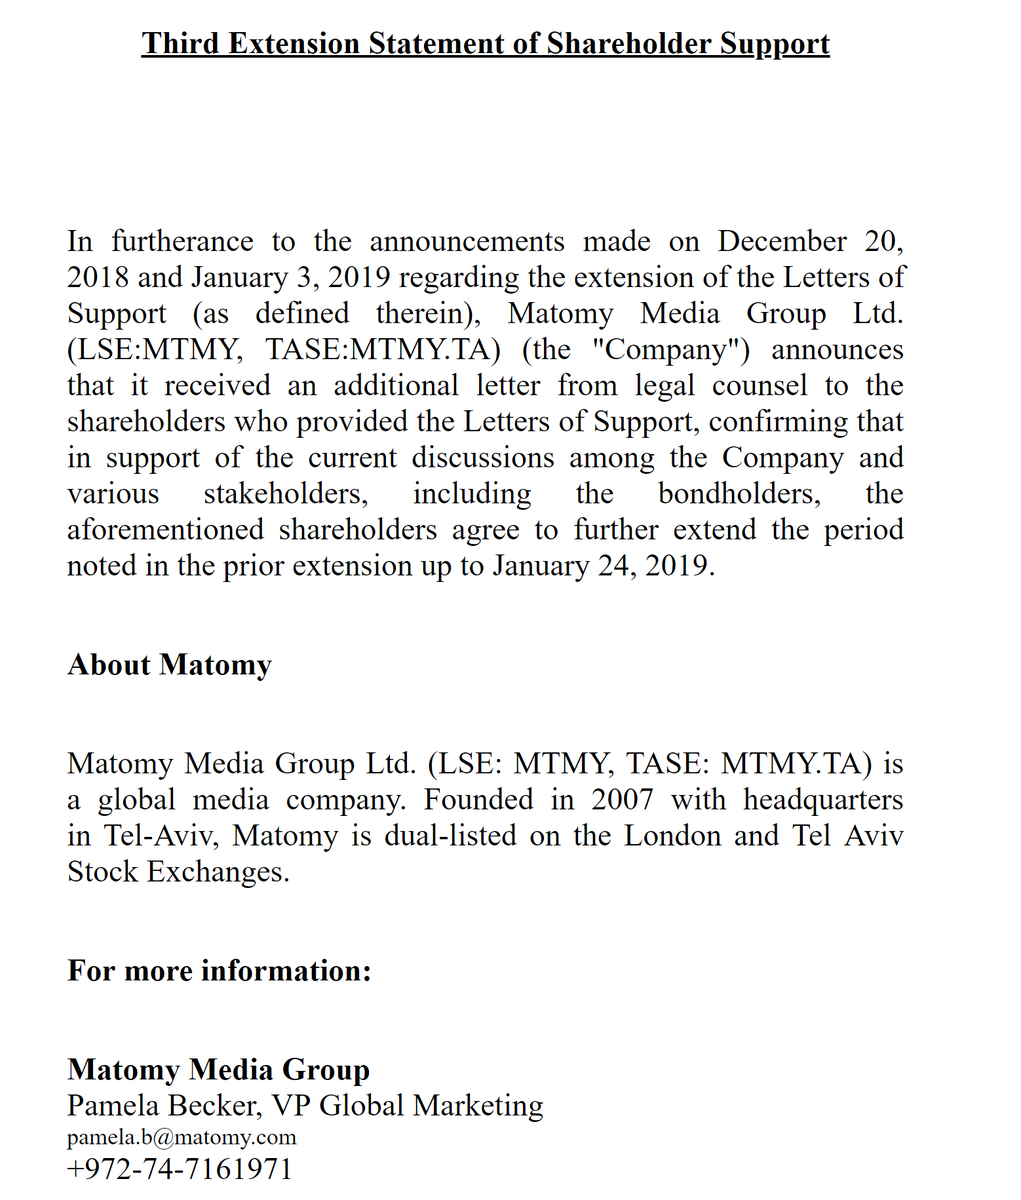 #LOOKING #HOT #Matomy #Media #Group #MTMY  Third Extension Statement of Shareholder Support RNS Number : 1128N Matomy Media Group Ltd 15 January 2019